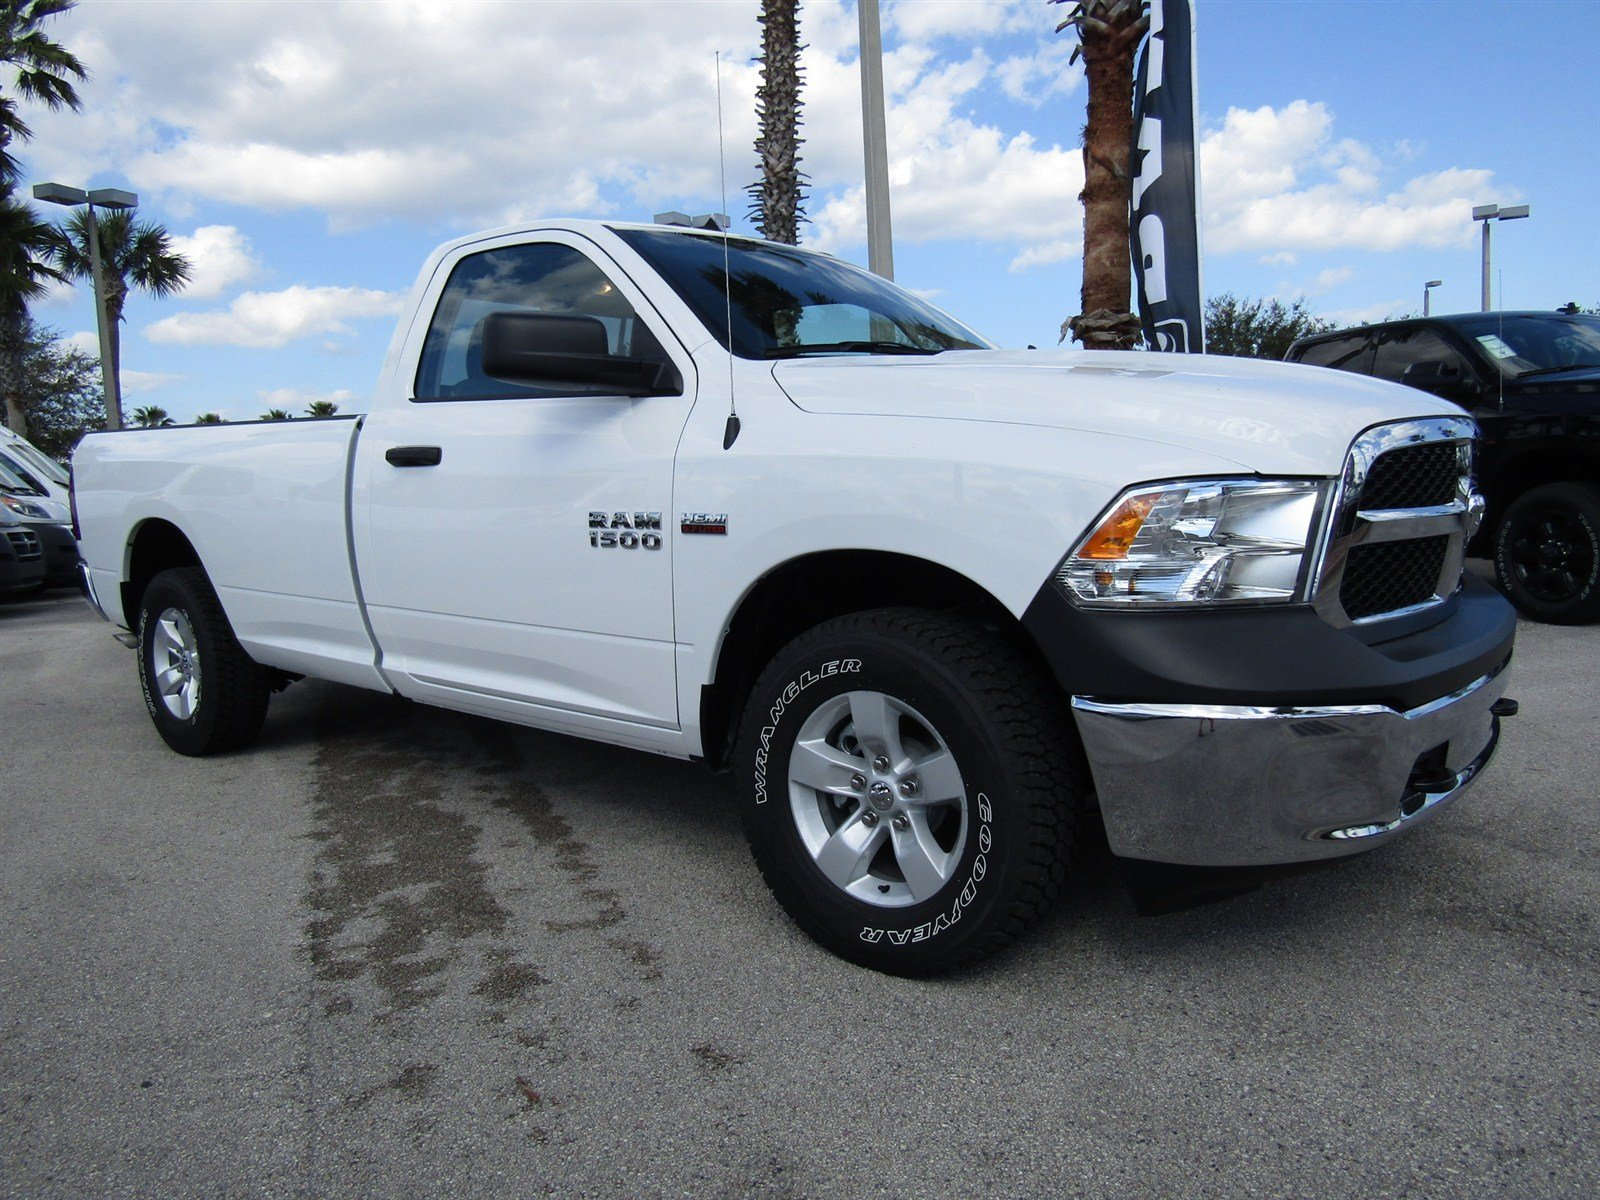 new 2017 ram 1500 tradesman regular cab in daytona beach r17287 daytona dodge chrysler jeep. Black Bedroom Furniture Sets. Home Design Ideas